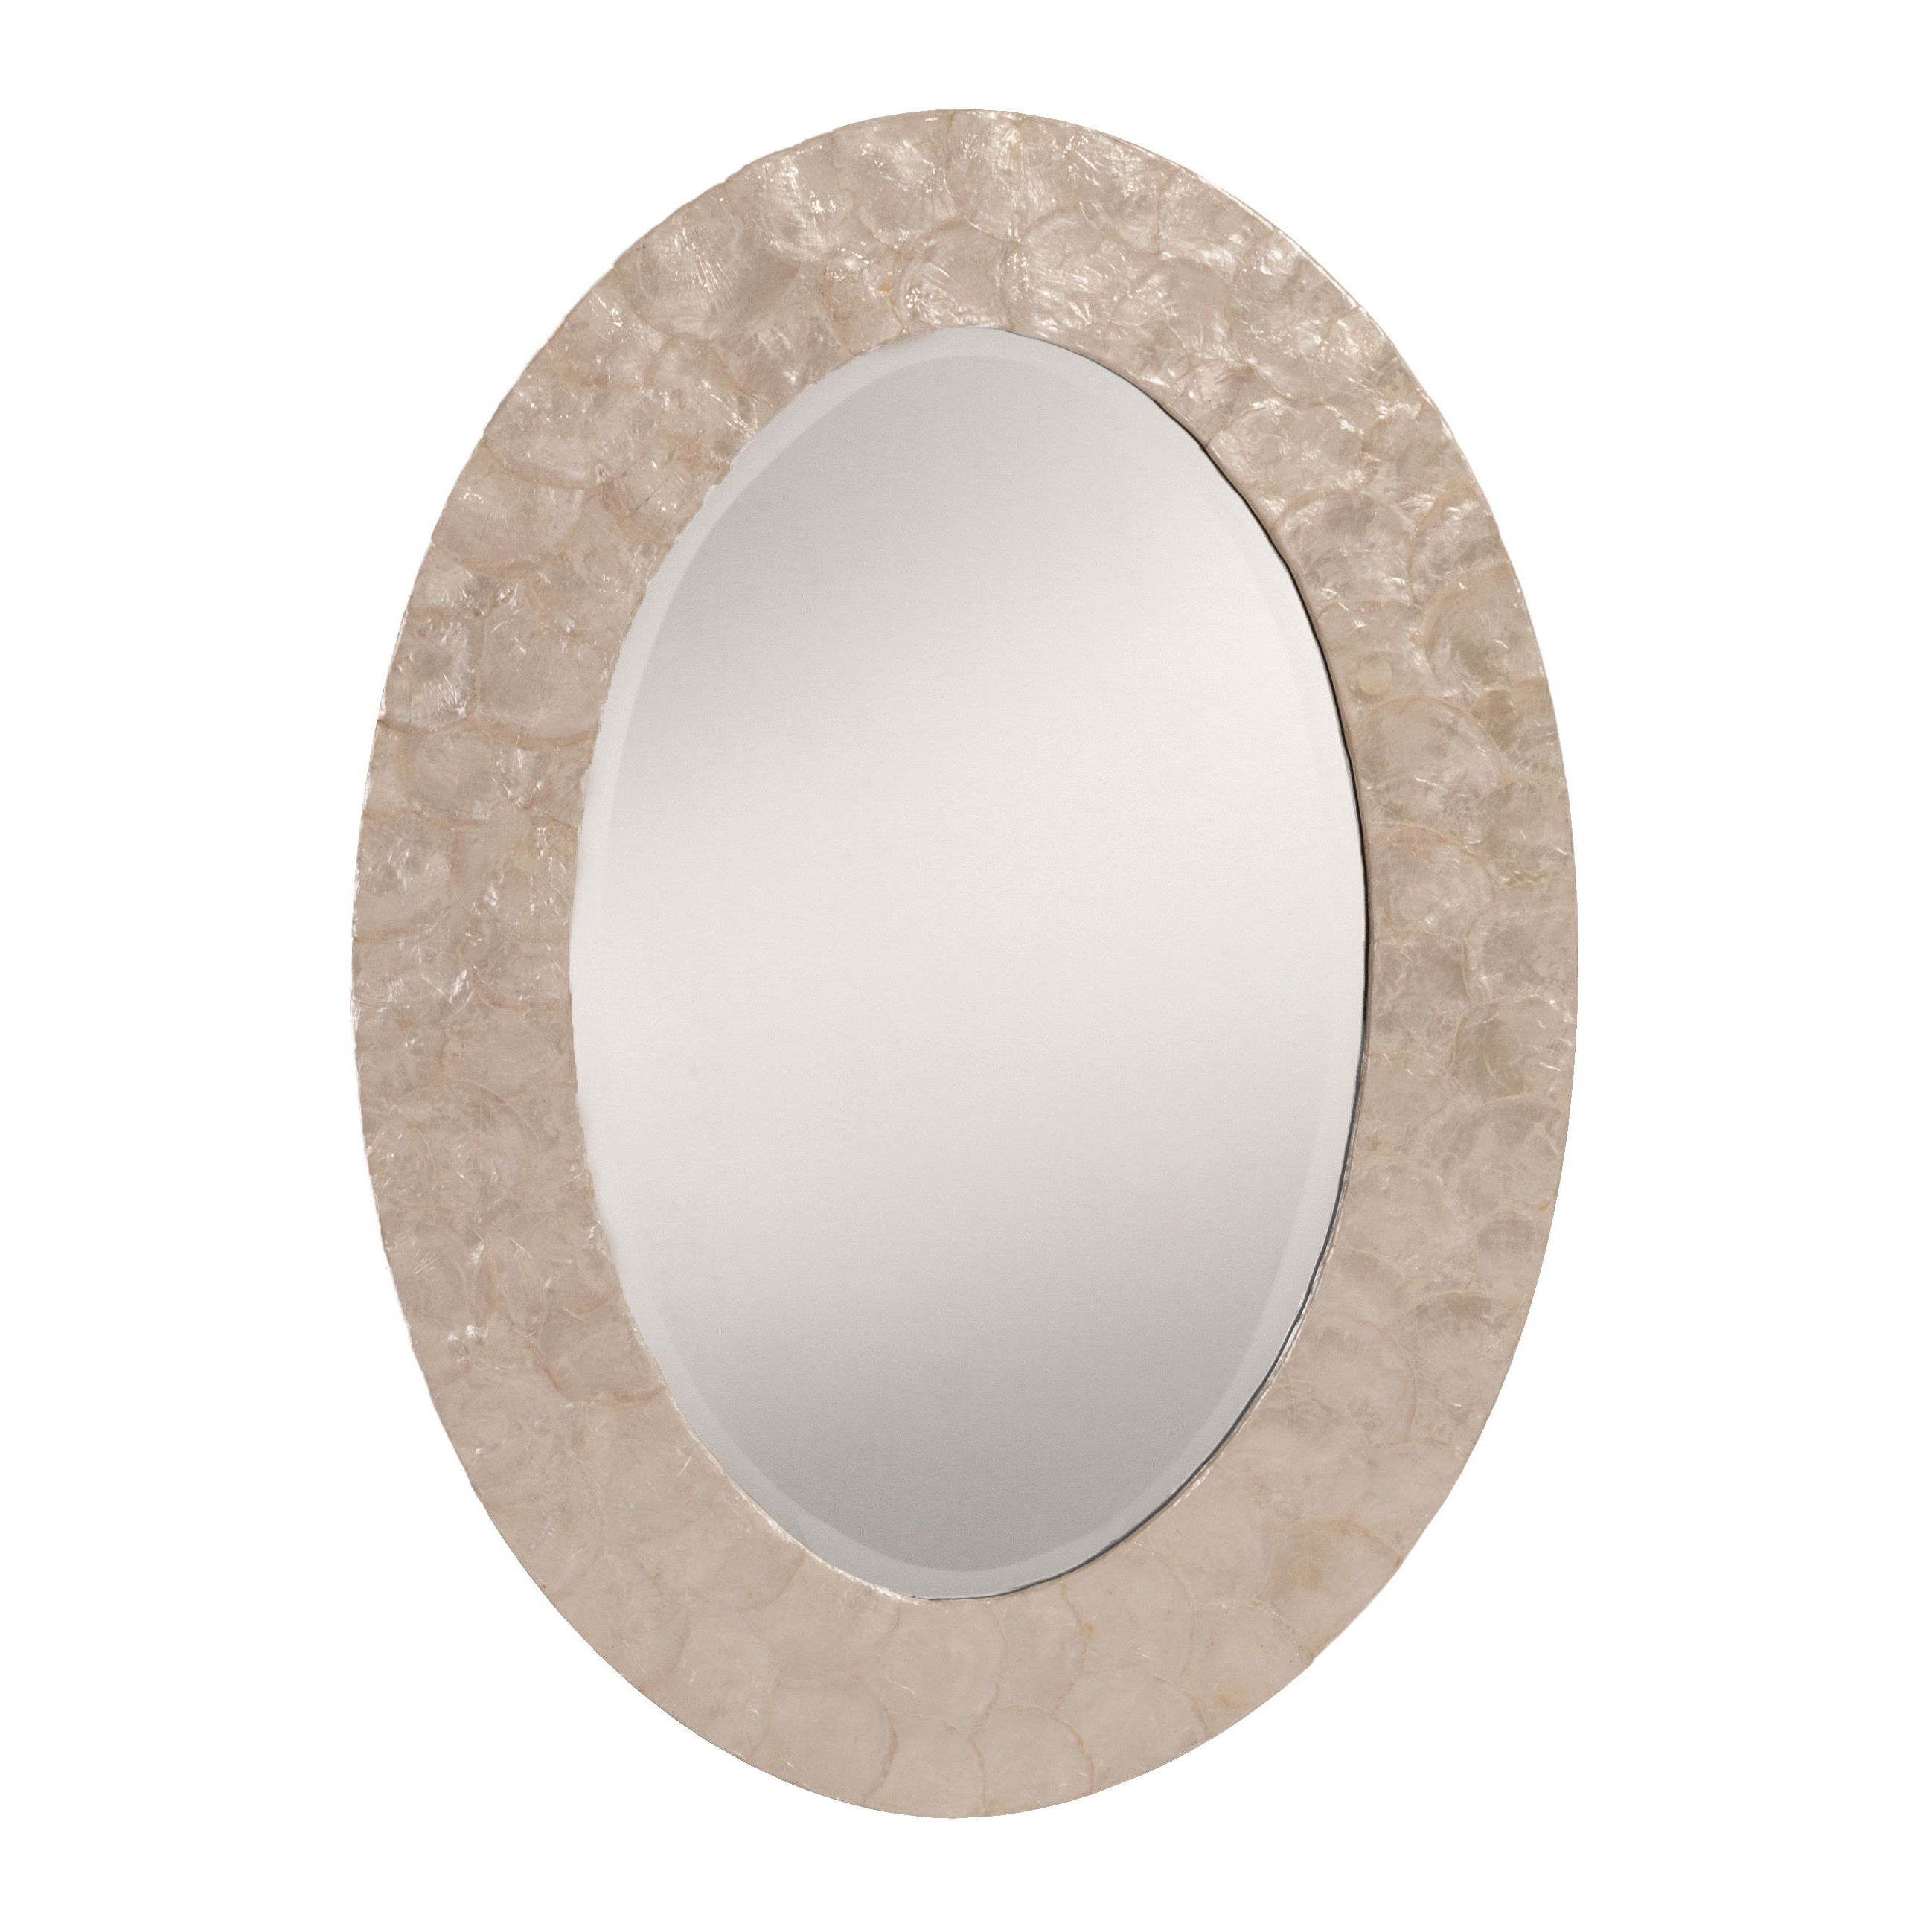 Mother Of Pearl Wall Mirrors With Favorite Osp Home Furnishings White Mother Of Pearl Finished Frame Decorative Beveled Wall Mirror – N/a (View 7 of 20)